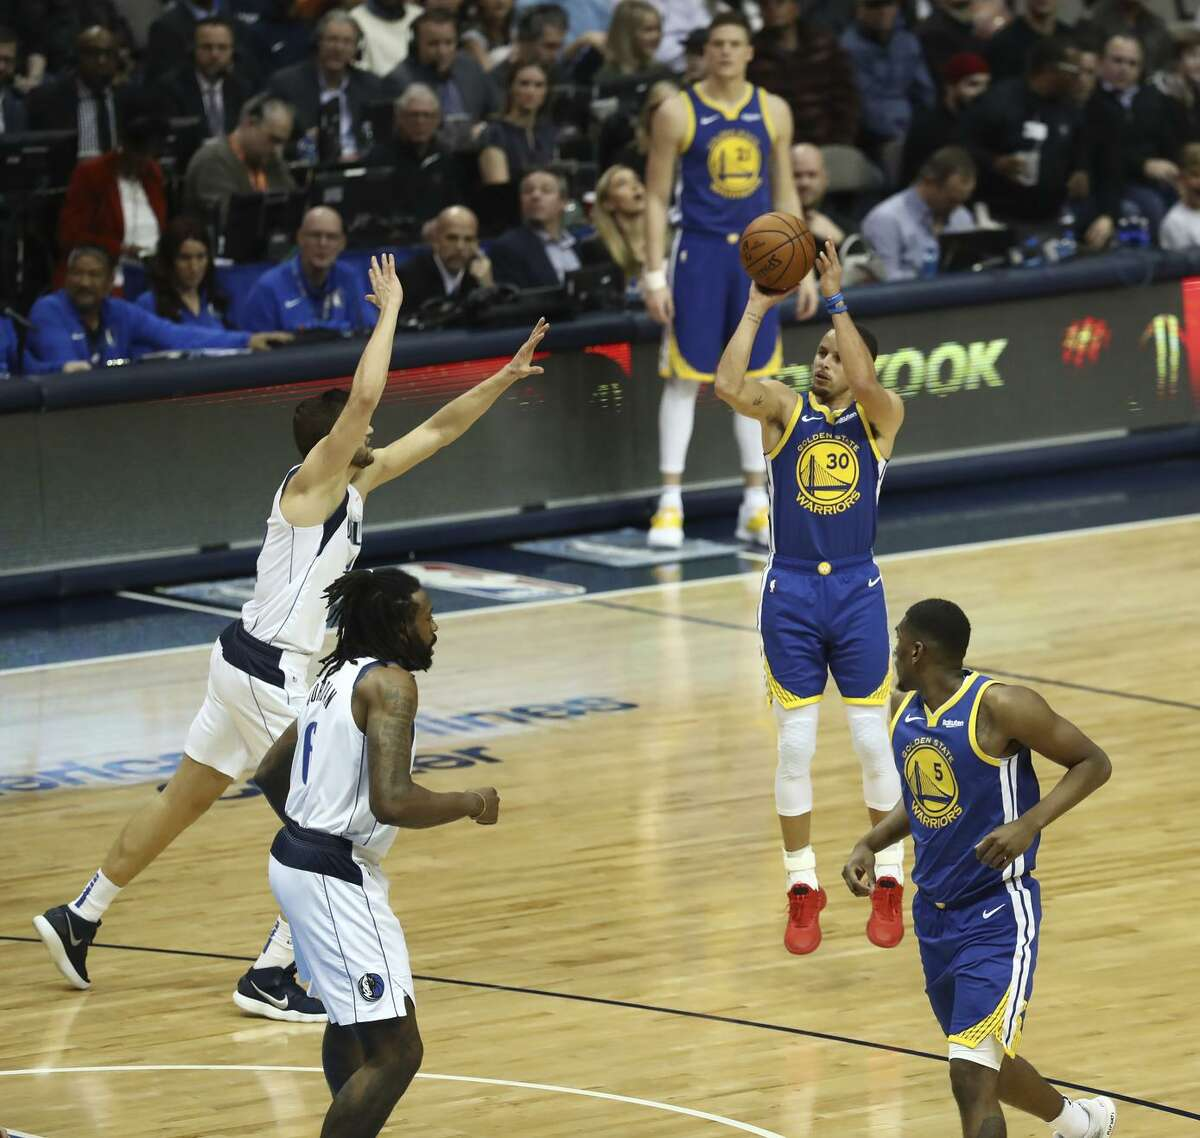 Stephen Curry launches a jump shot against the Mavericks. He hit 11 3-pointers and scored 48 points, figures that could help him rejoin the conversation about potential MVP candidates.